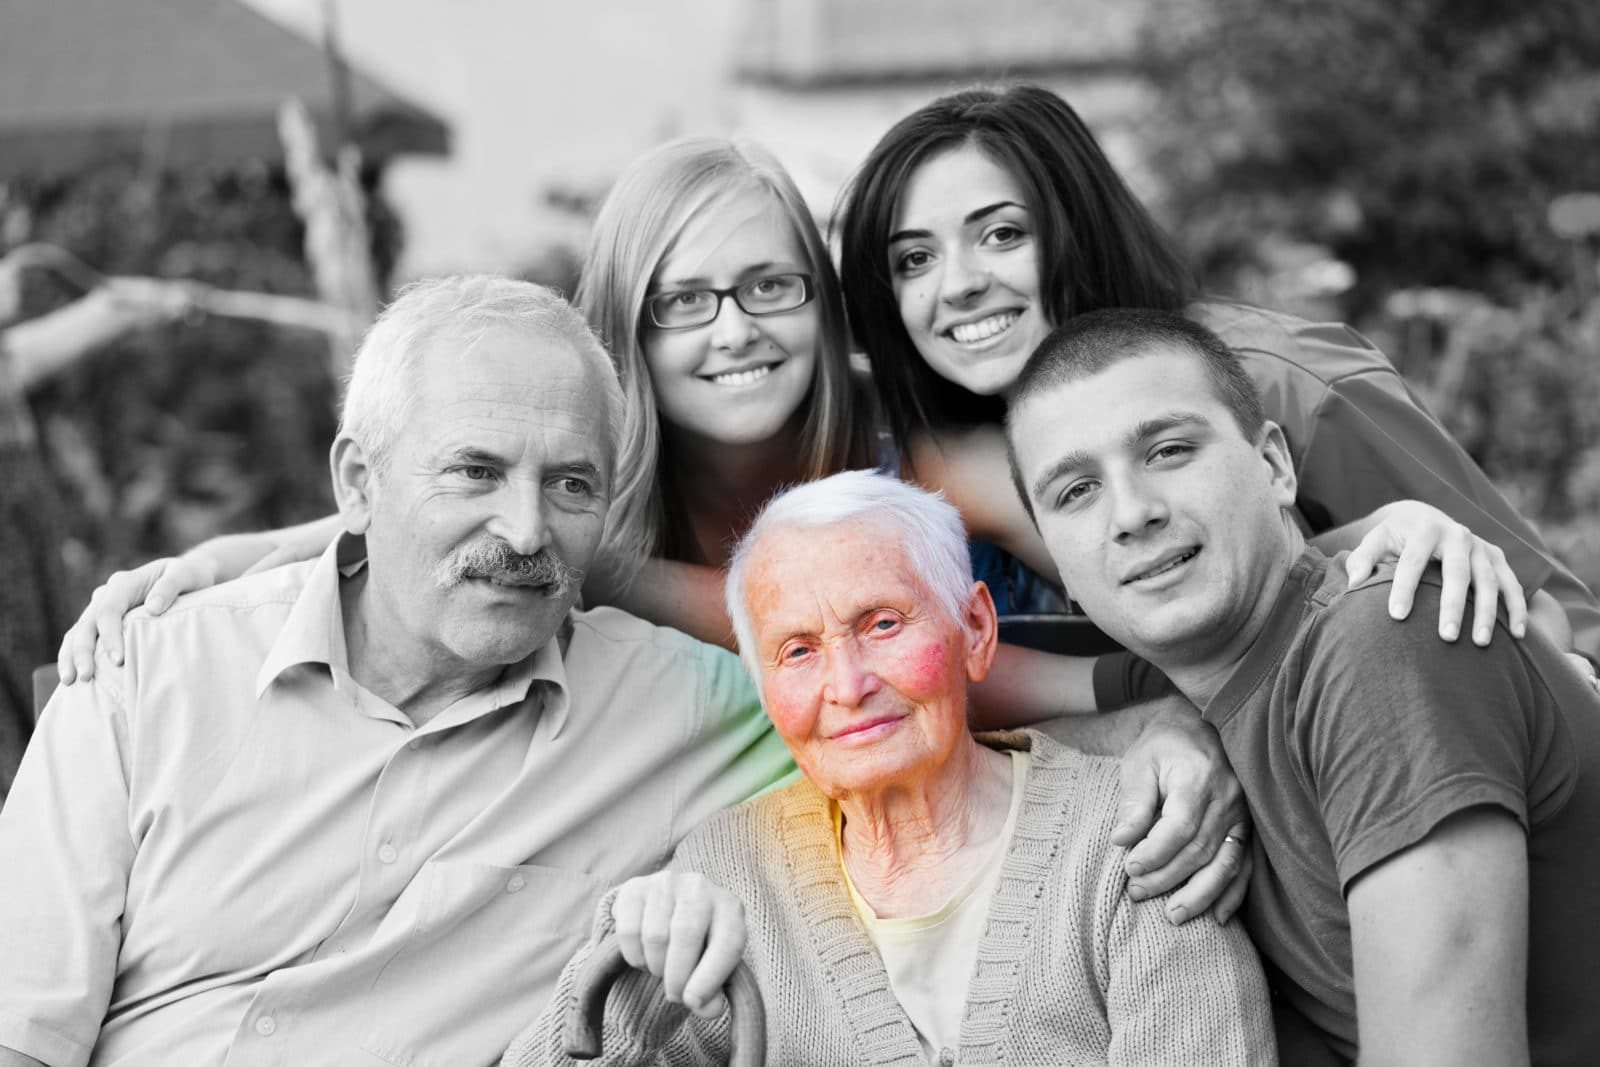 how to care for someone with Alzheimer's, How to Care for Someone with Alzheimer's: 6 Essential Tips